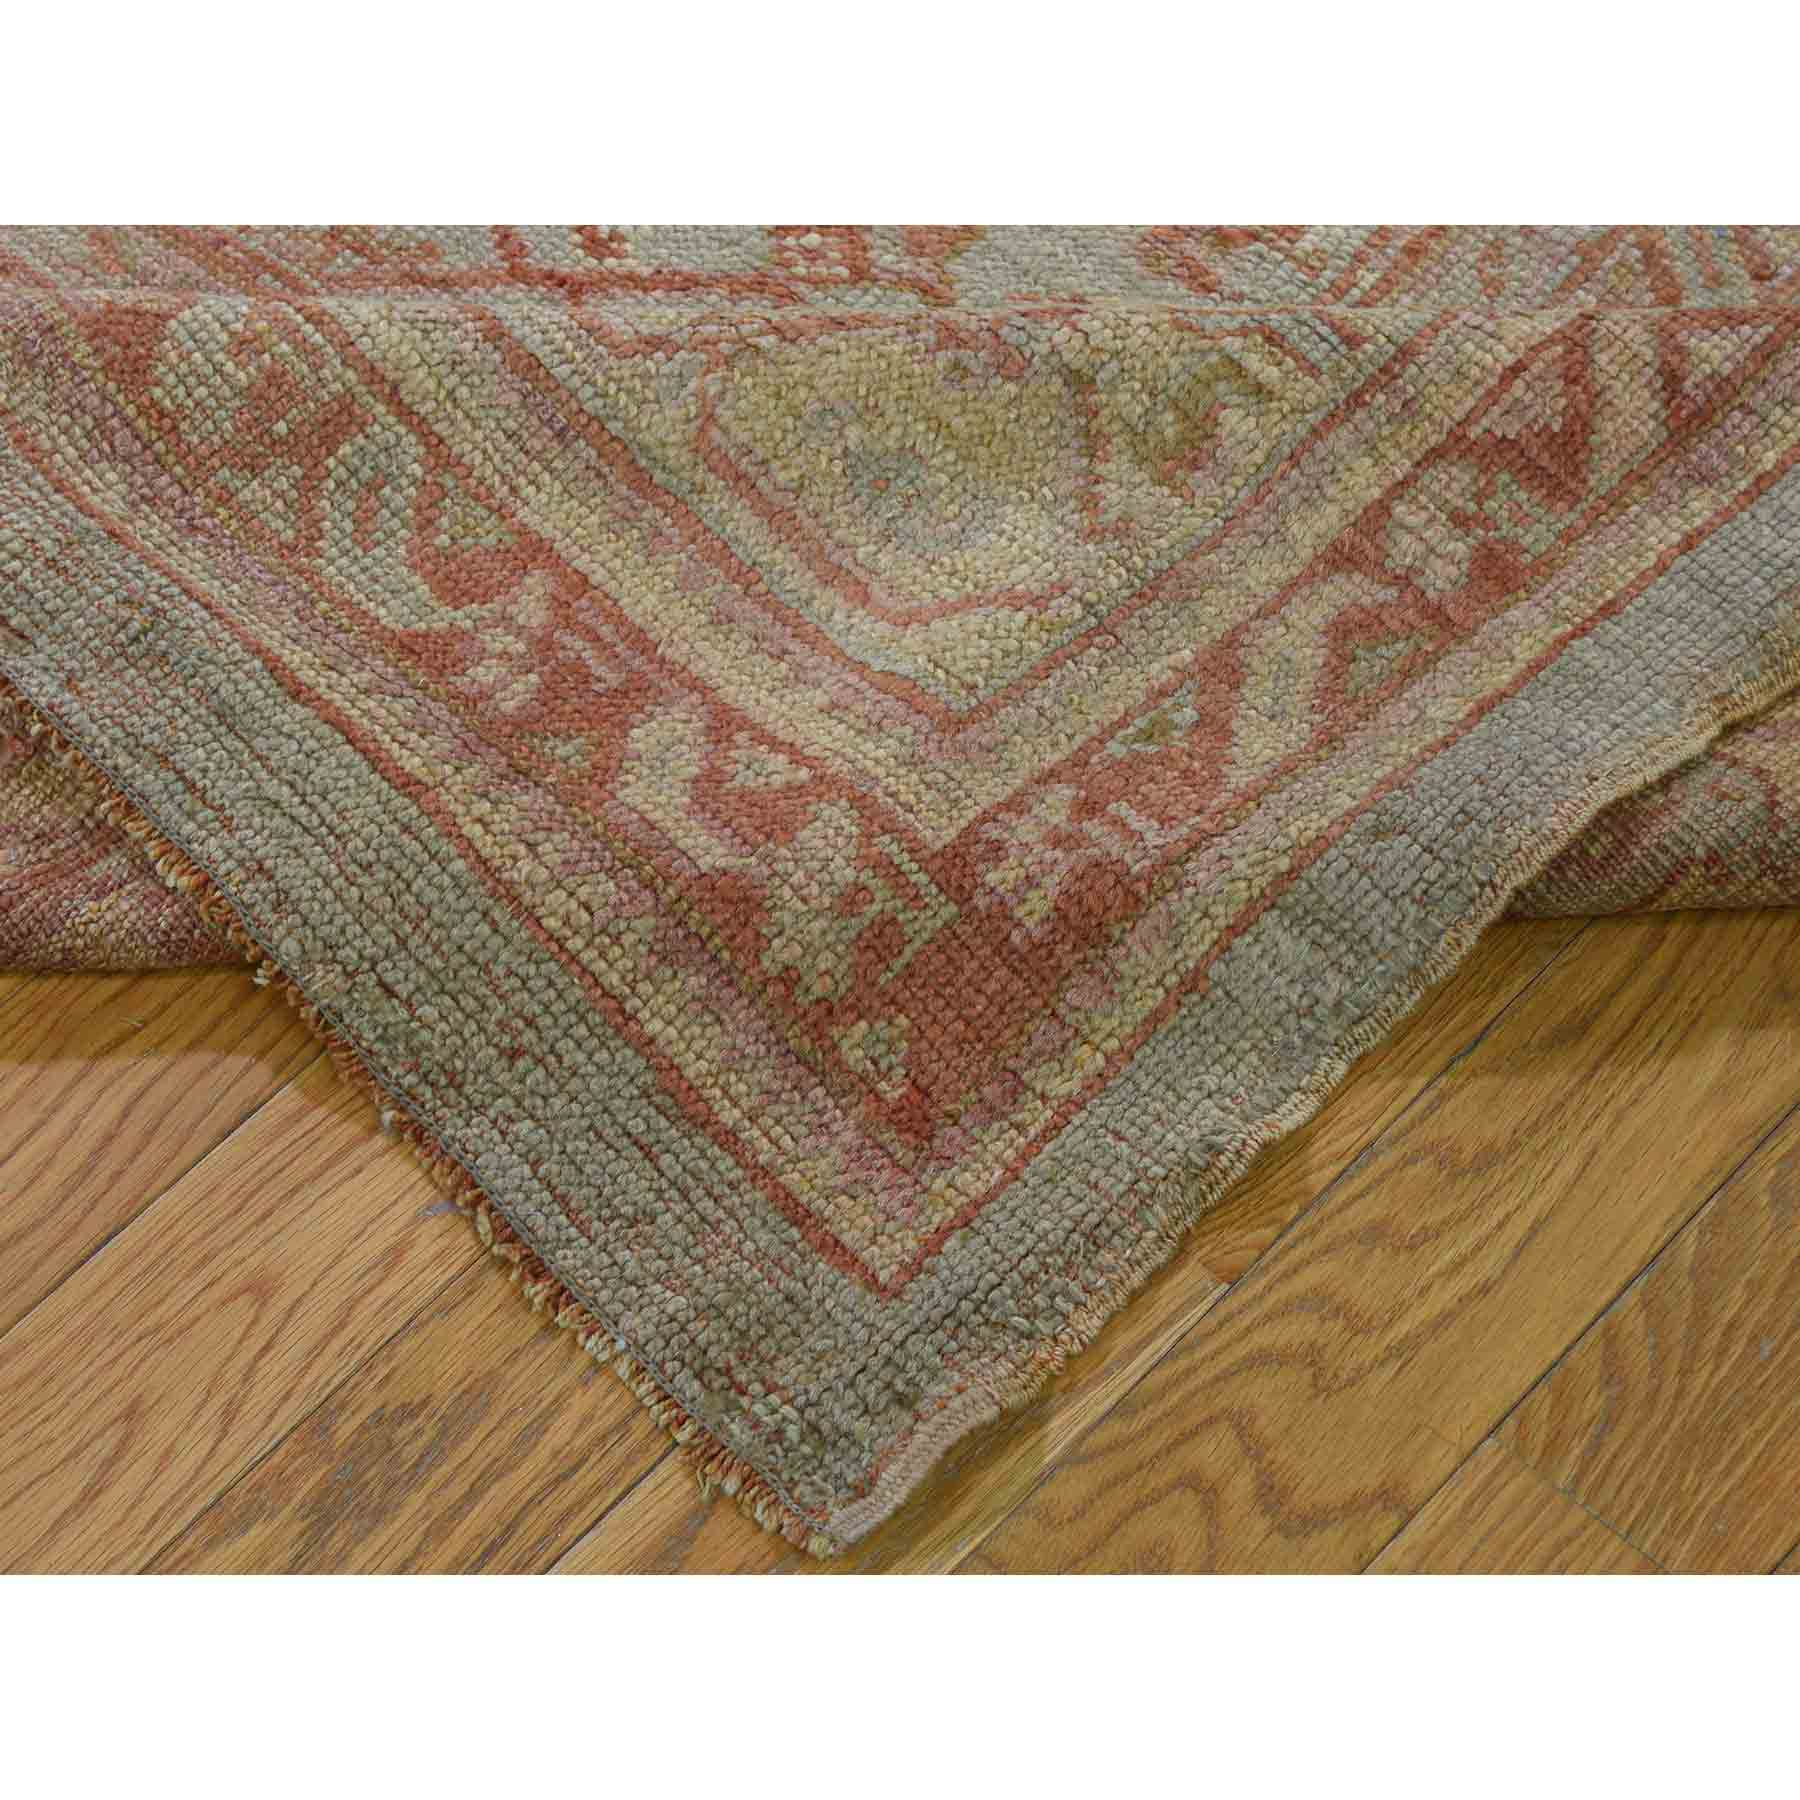 Antique-Hand-Knotted-Rug-223690